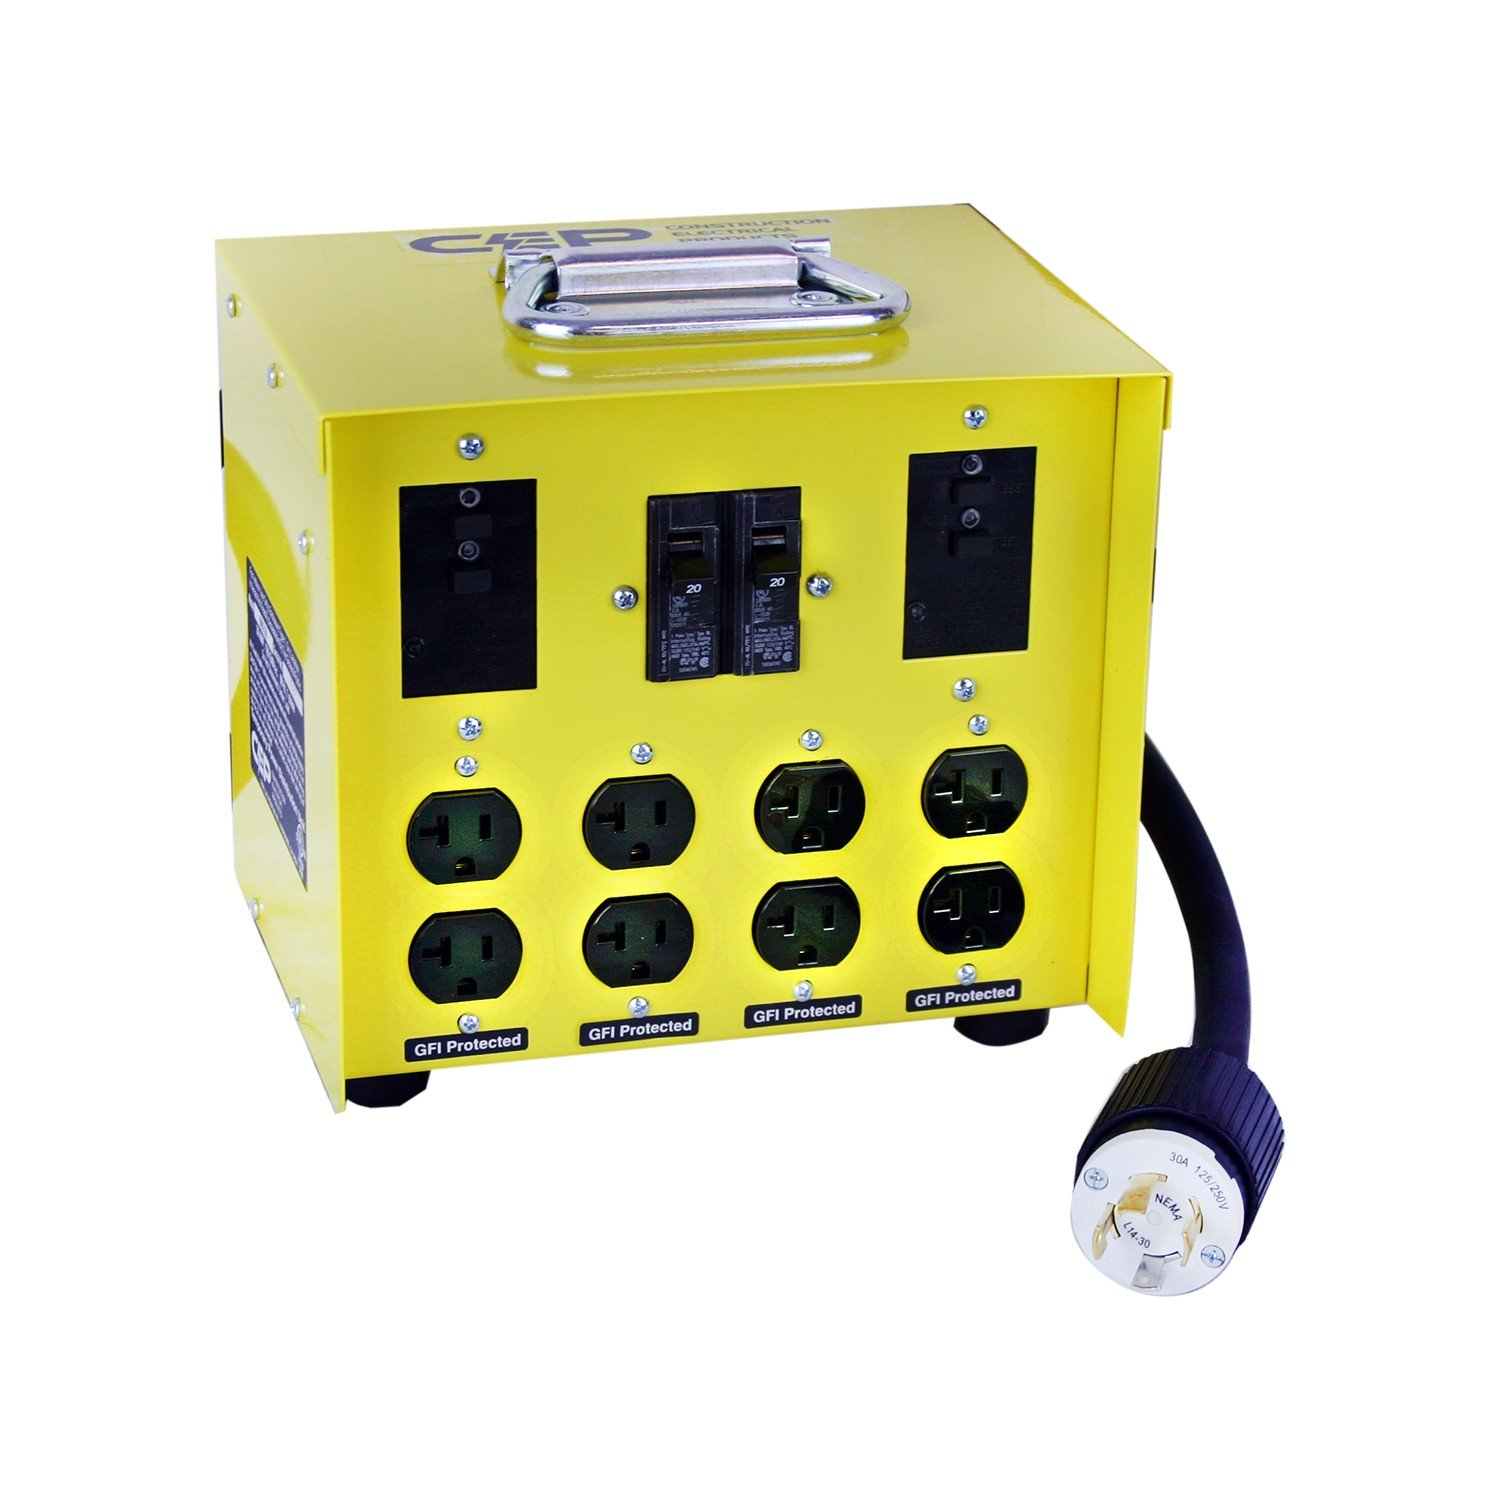 CEP Construction Electrical Products 6503GU 30-Amp Mini Portable Power Center